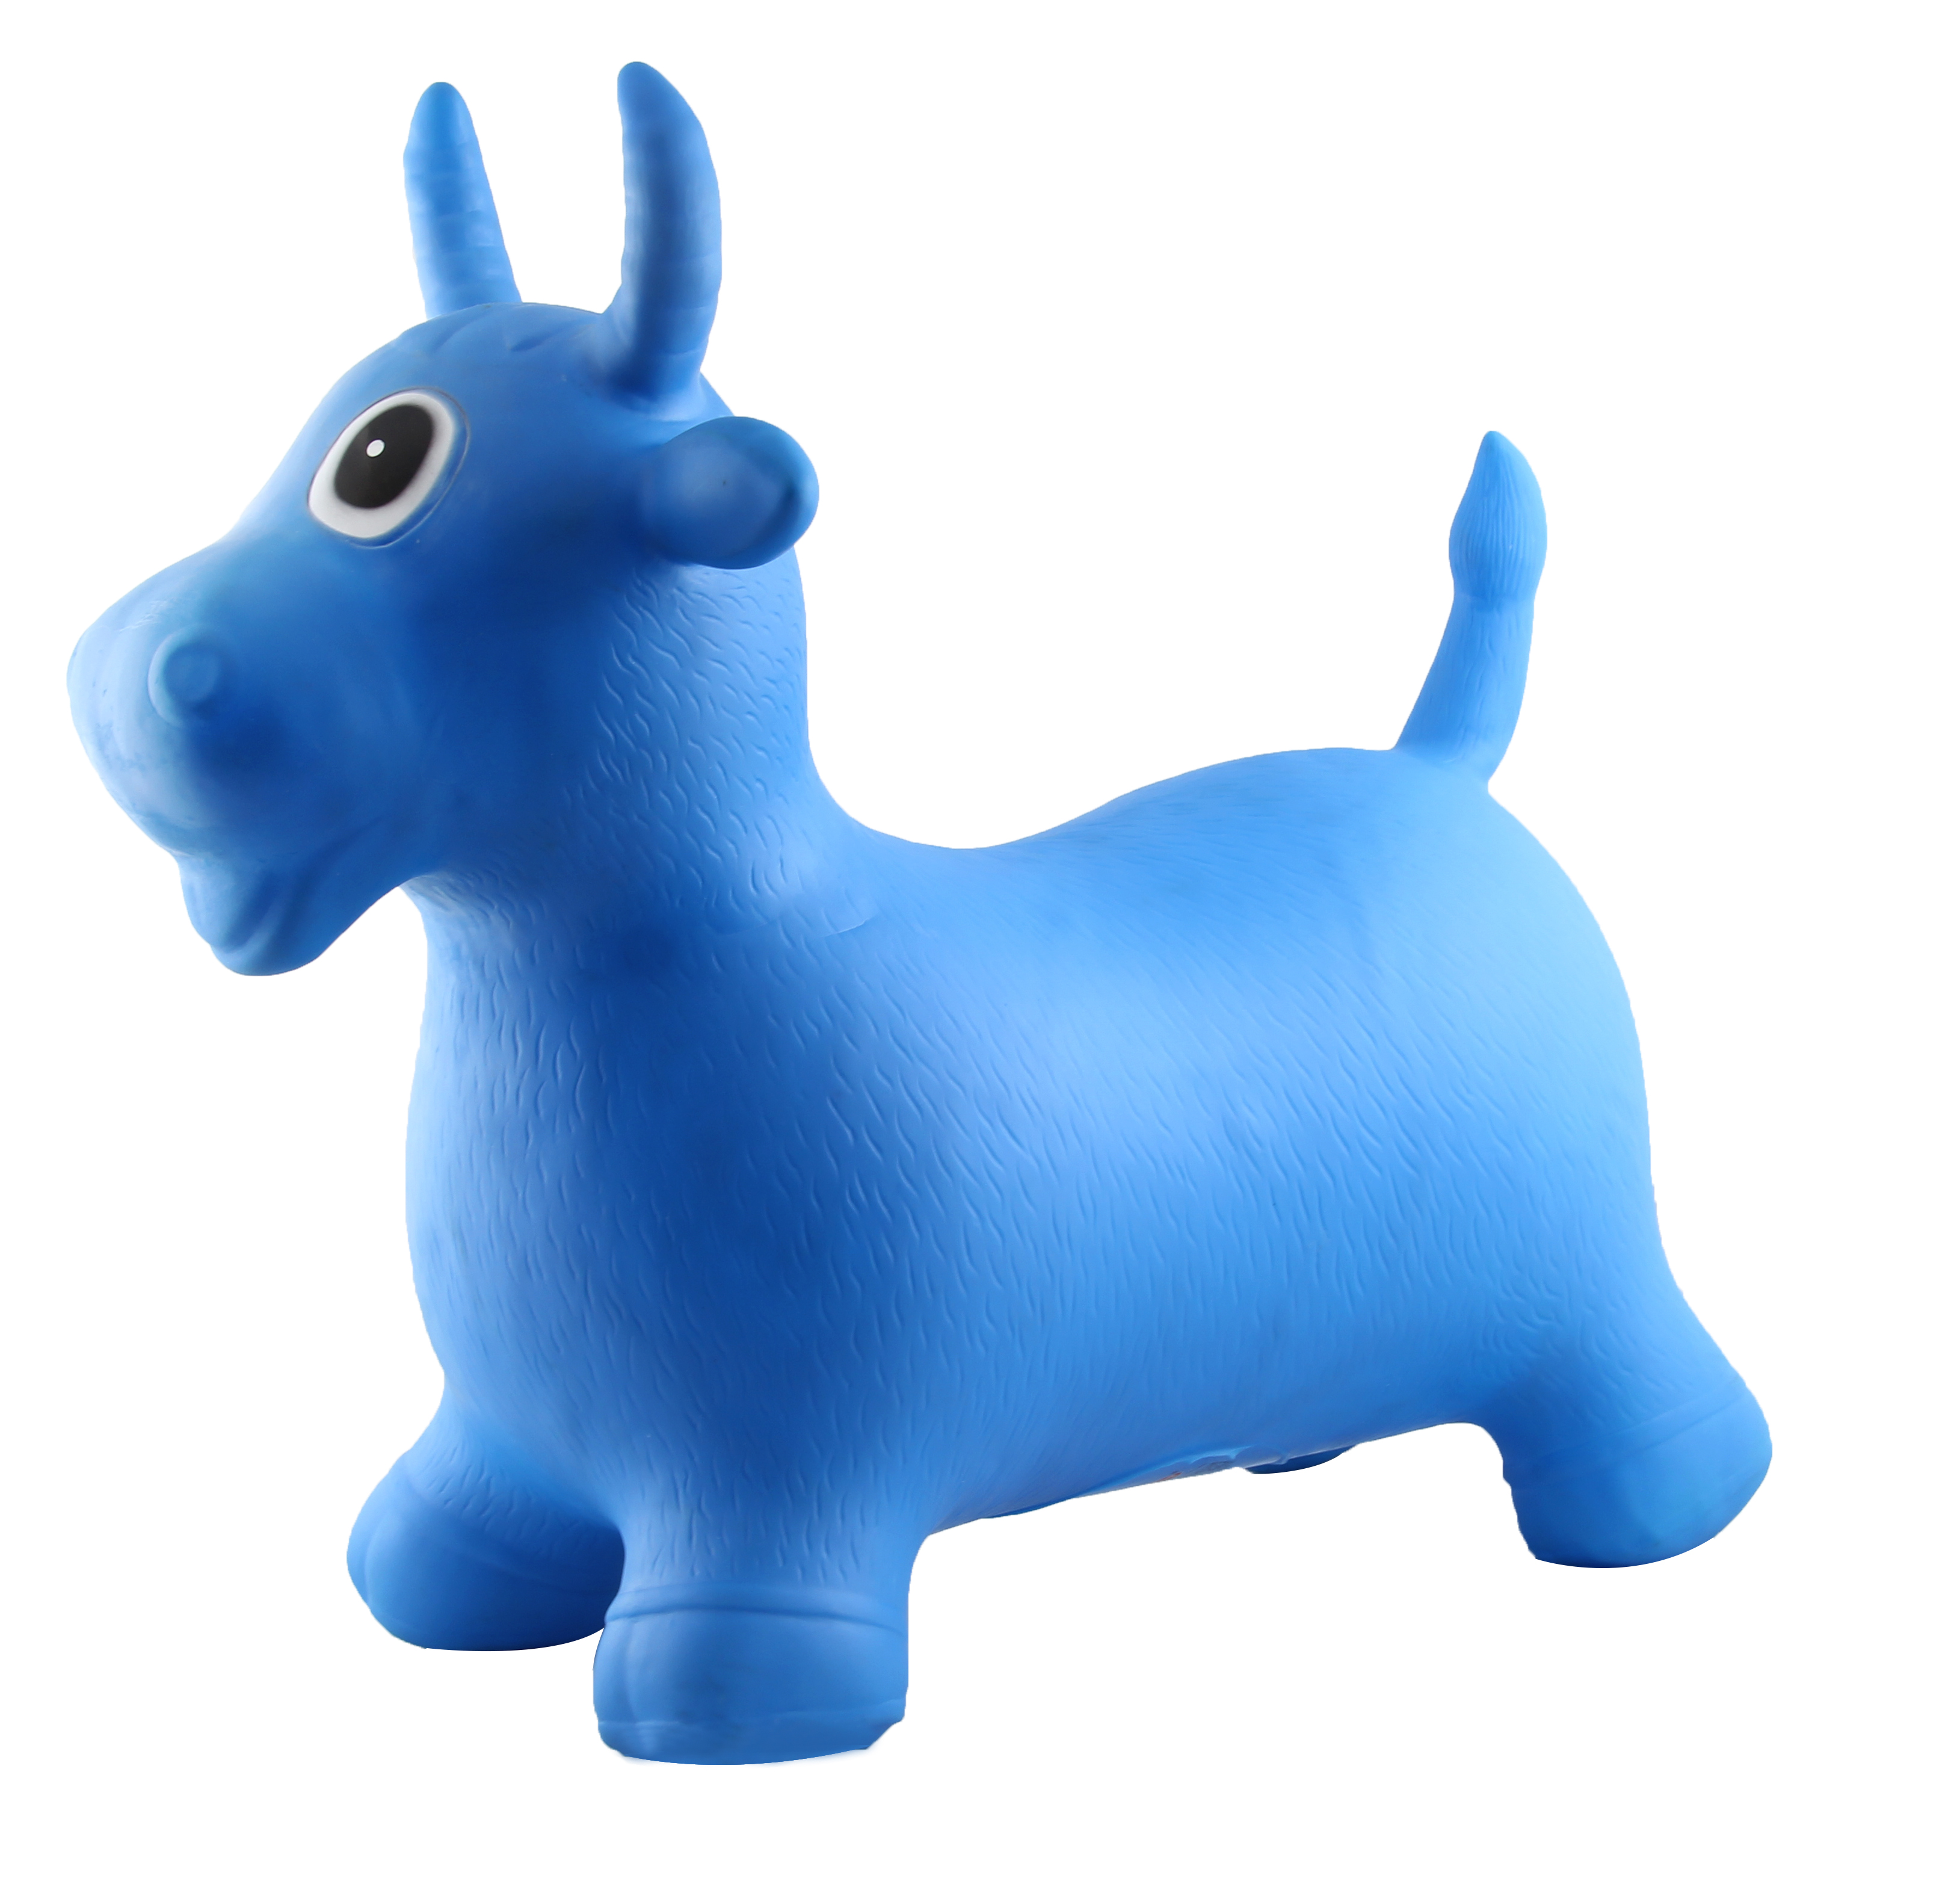 Inflatable Eco-friendly PVC material Ride-on Animal hopper cow indoor & outdoor toys